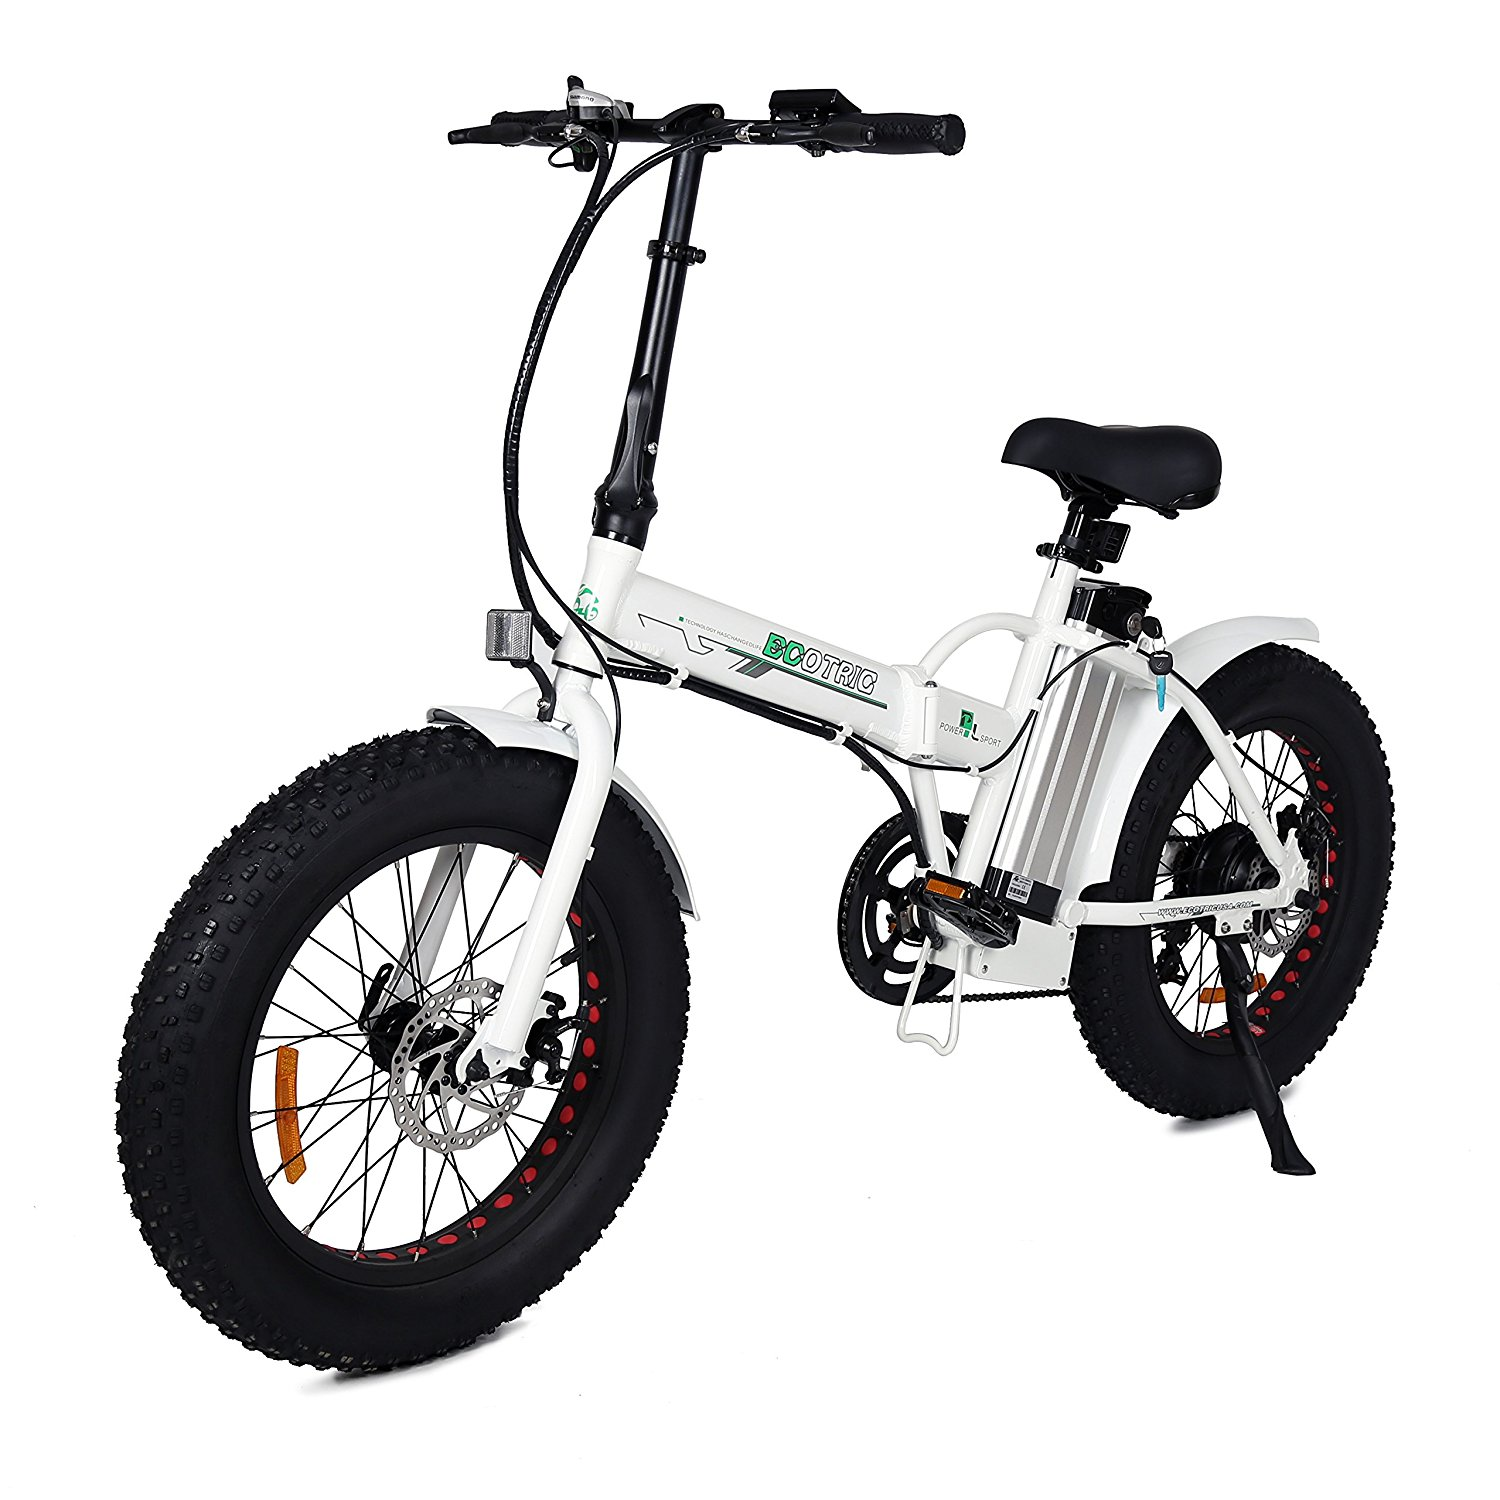 Weekend Project Build Your Own Diy Fat Tire Electric Bicycle For